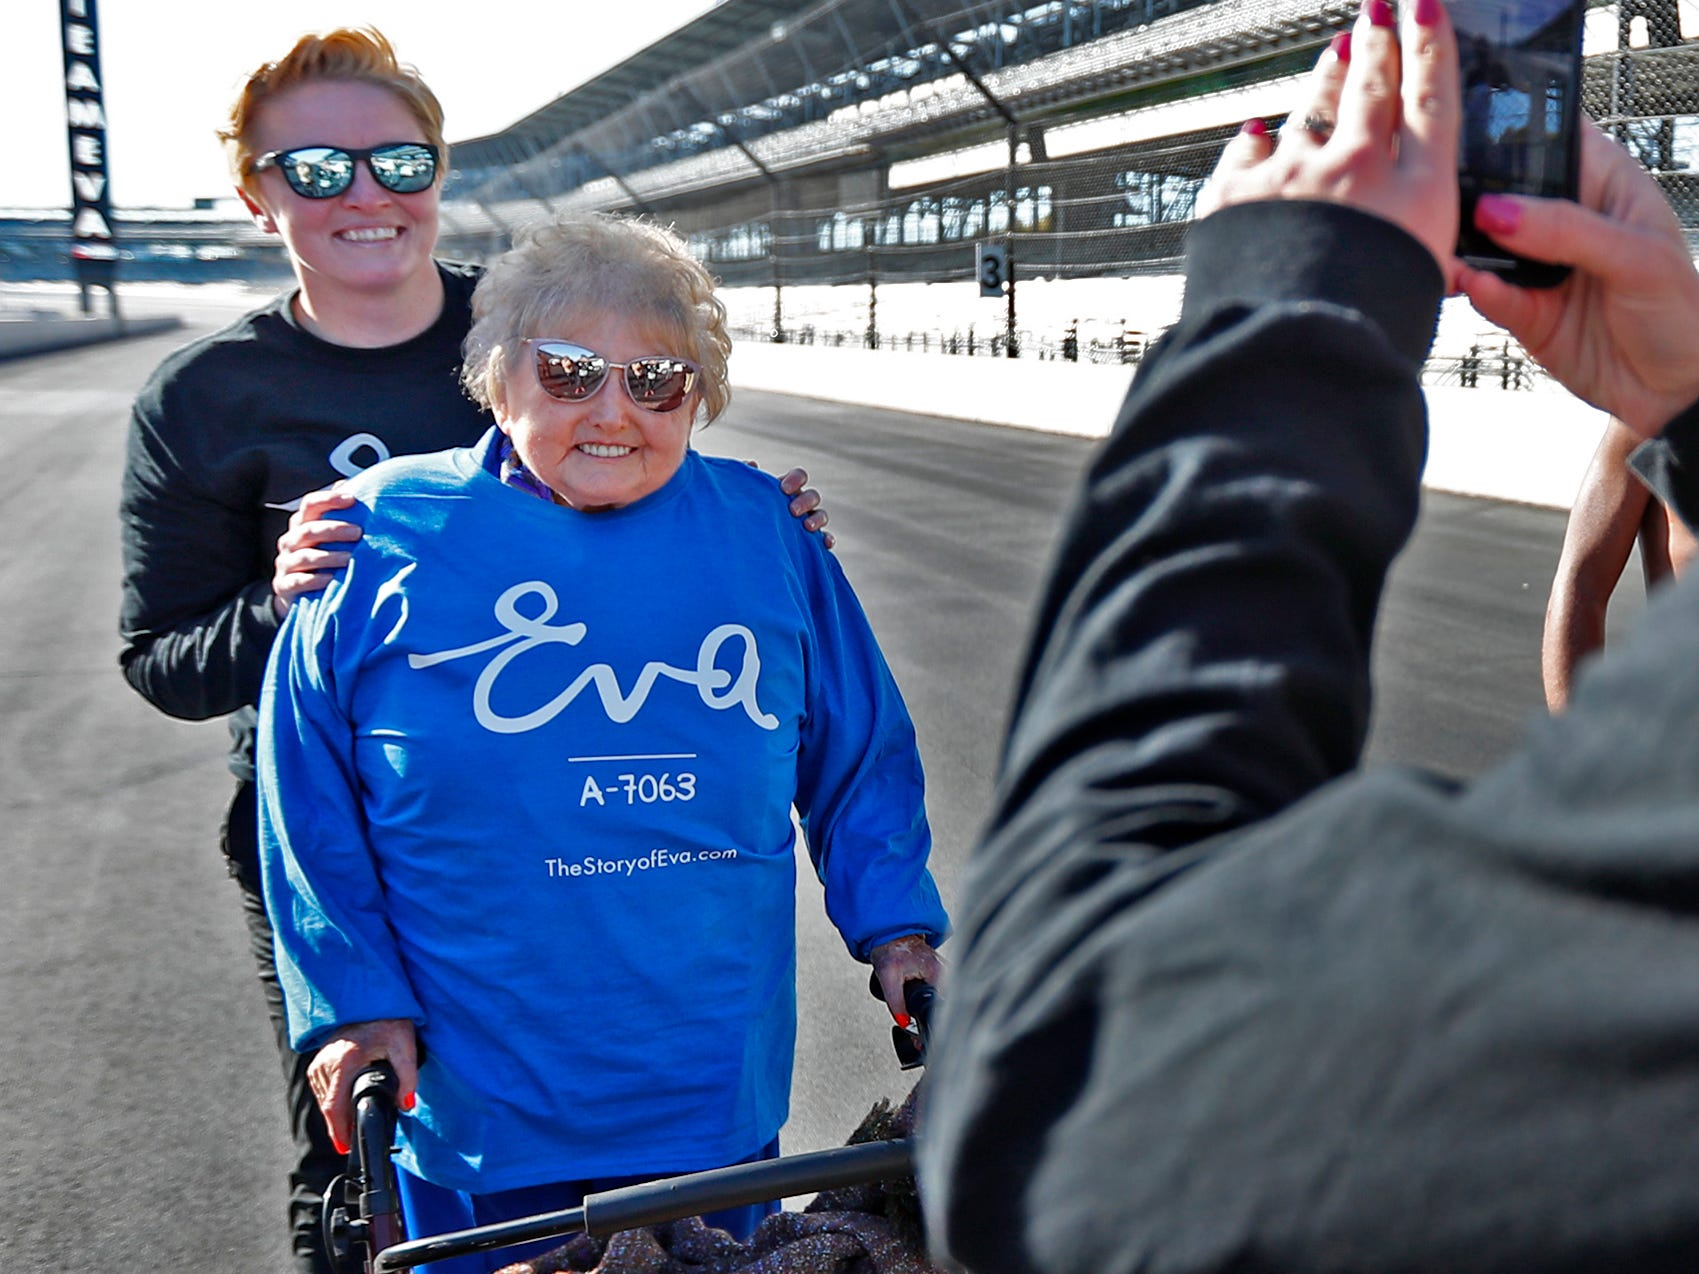 Holocaust survivor Eva Kor, right, joins others, including Mika Brown, at the Indianapolis Motor Speedway Yard of Bricks for photos, Wednesday, Oct. 24, 2018, during the pace-setting run for the 2019 OneAmerica 500 Festival Mini-Marathon.  The 500 Festival will donate $1 to the CANDLES Holocaust Museum in Terre Haute for every mini-marathon participant who finishes the 2019 race in a better time than Team Eva.  Kor ran the very last of the relay race.